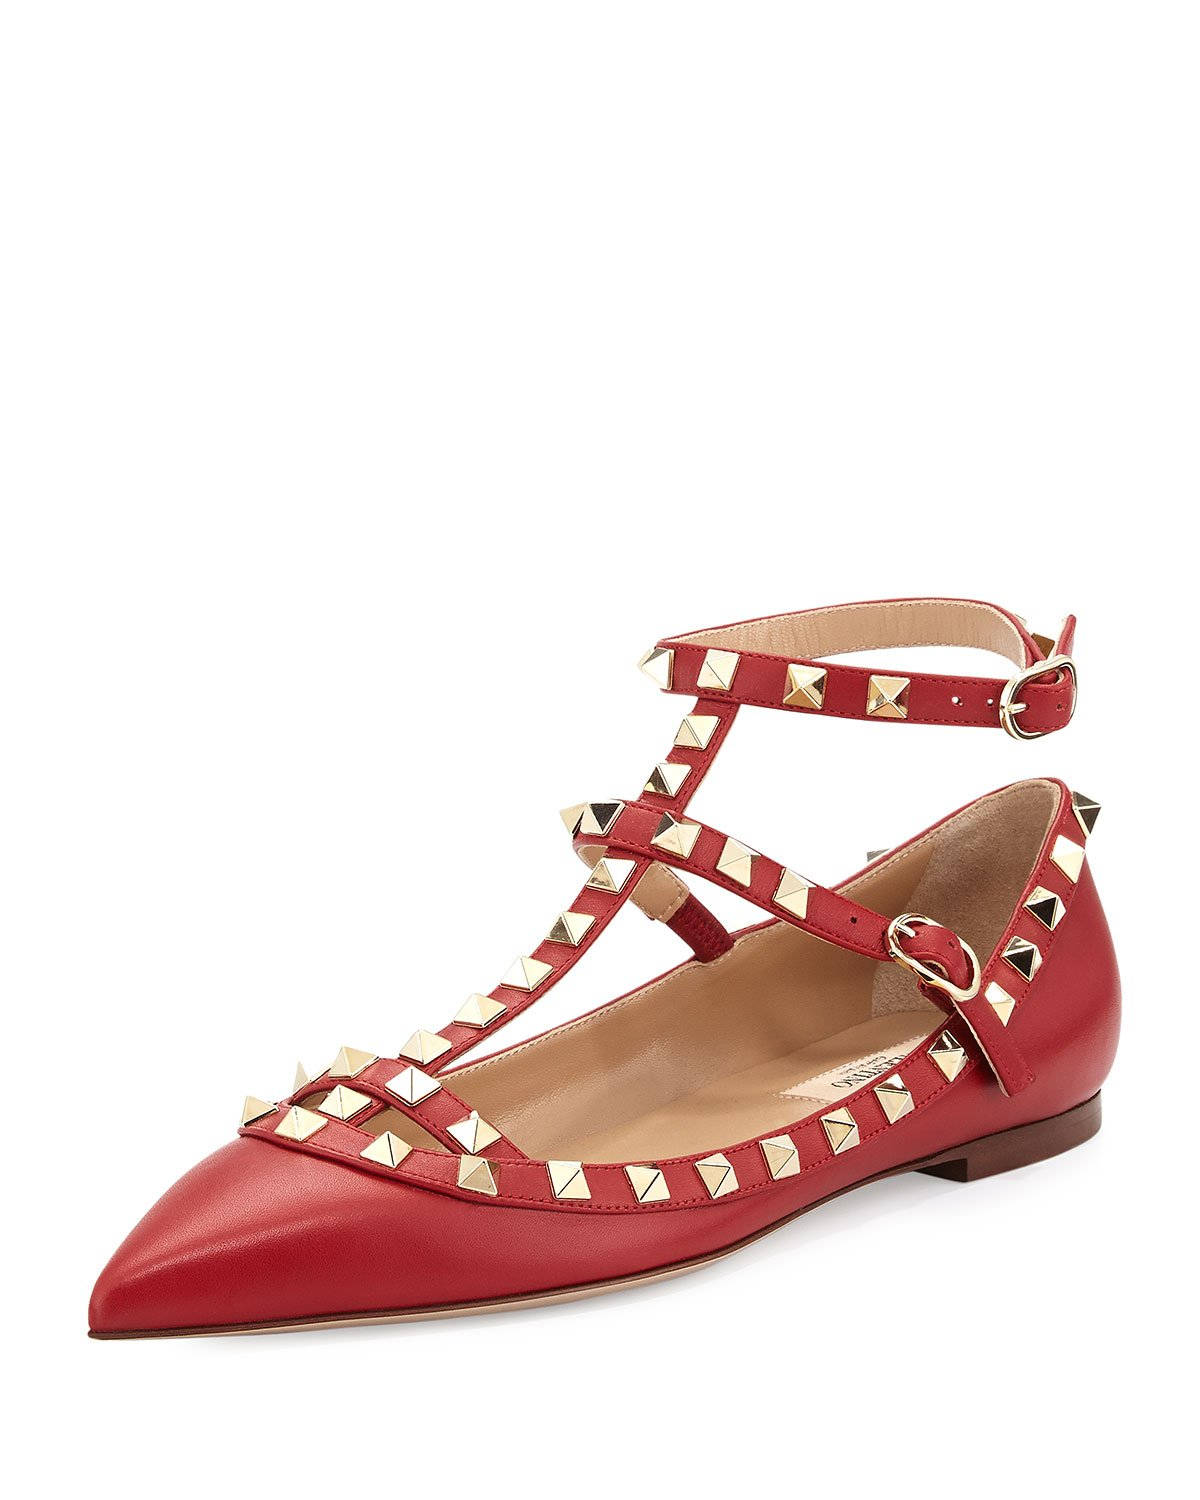 Valentino Rockstud Cage Leather Ballerina Flat in Red | Lyst